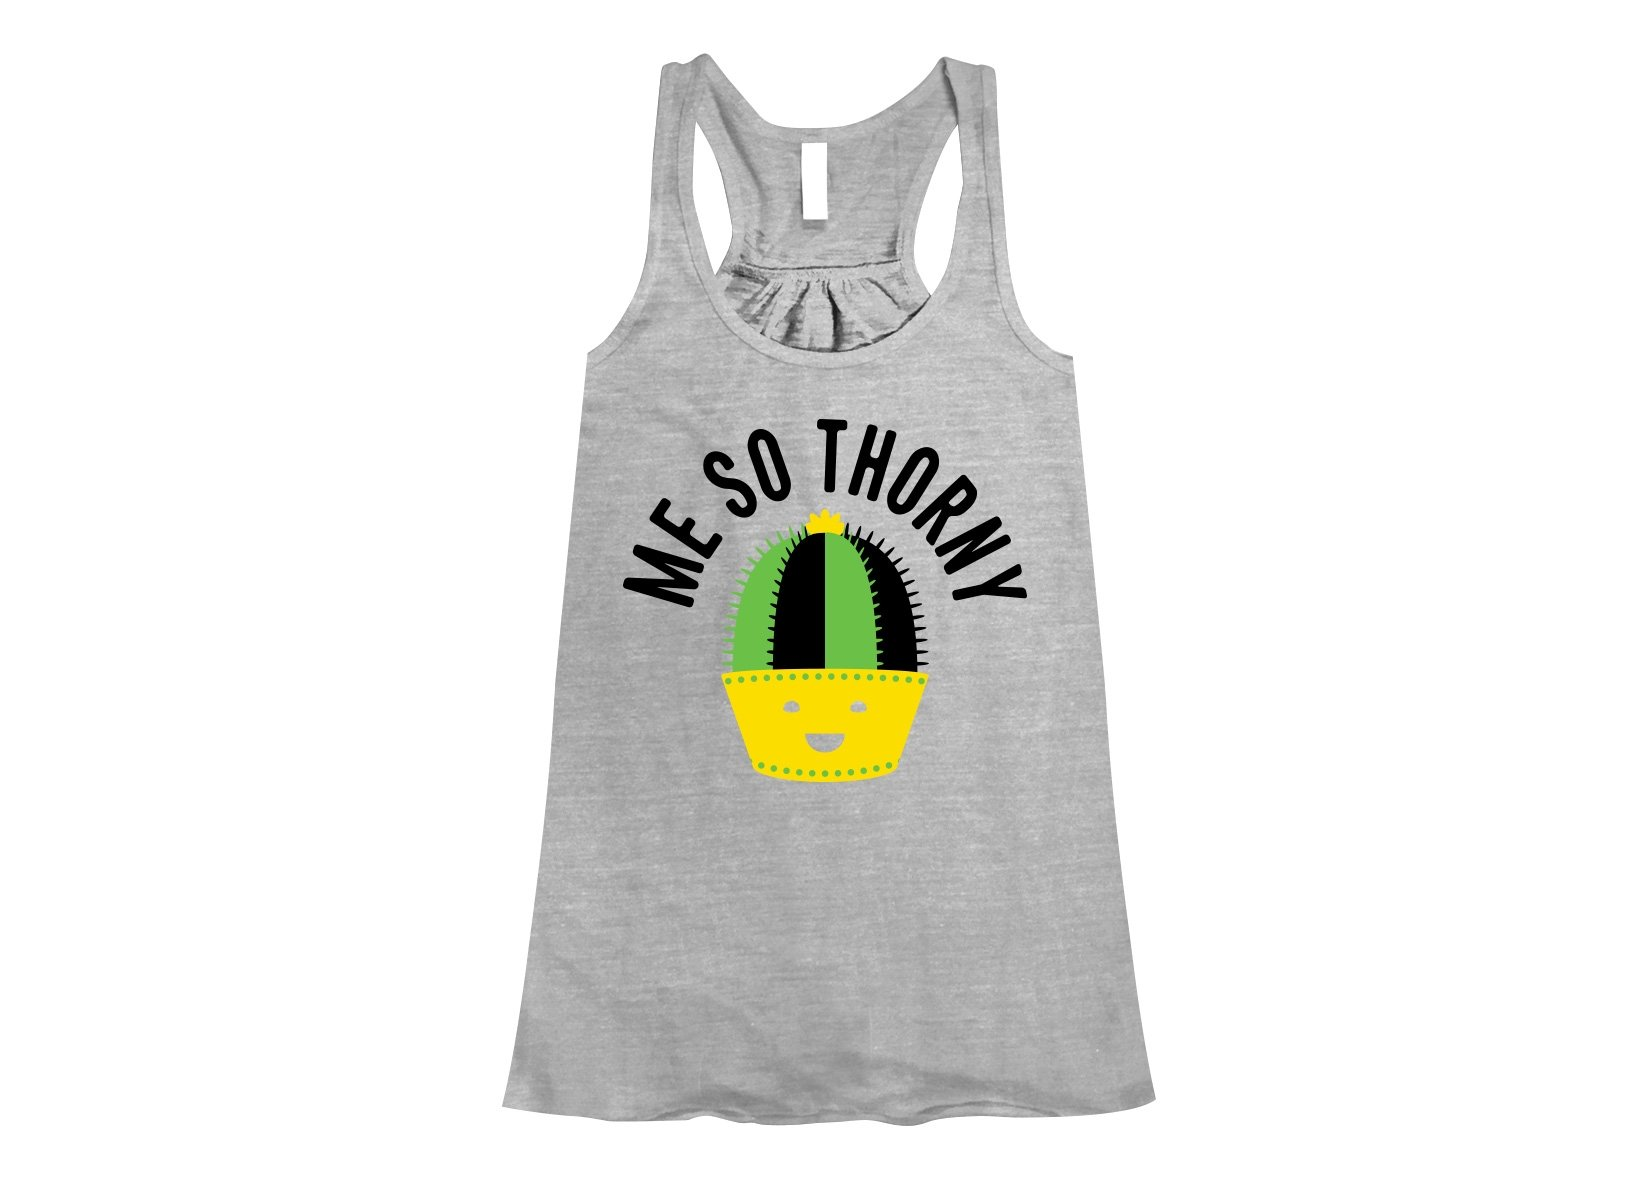 Me So Thorny on Womens Tanks T-Shirt